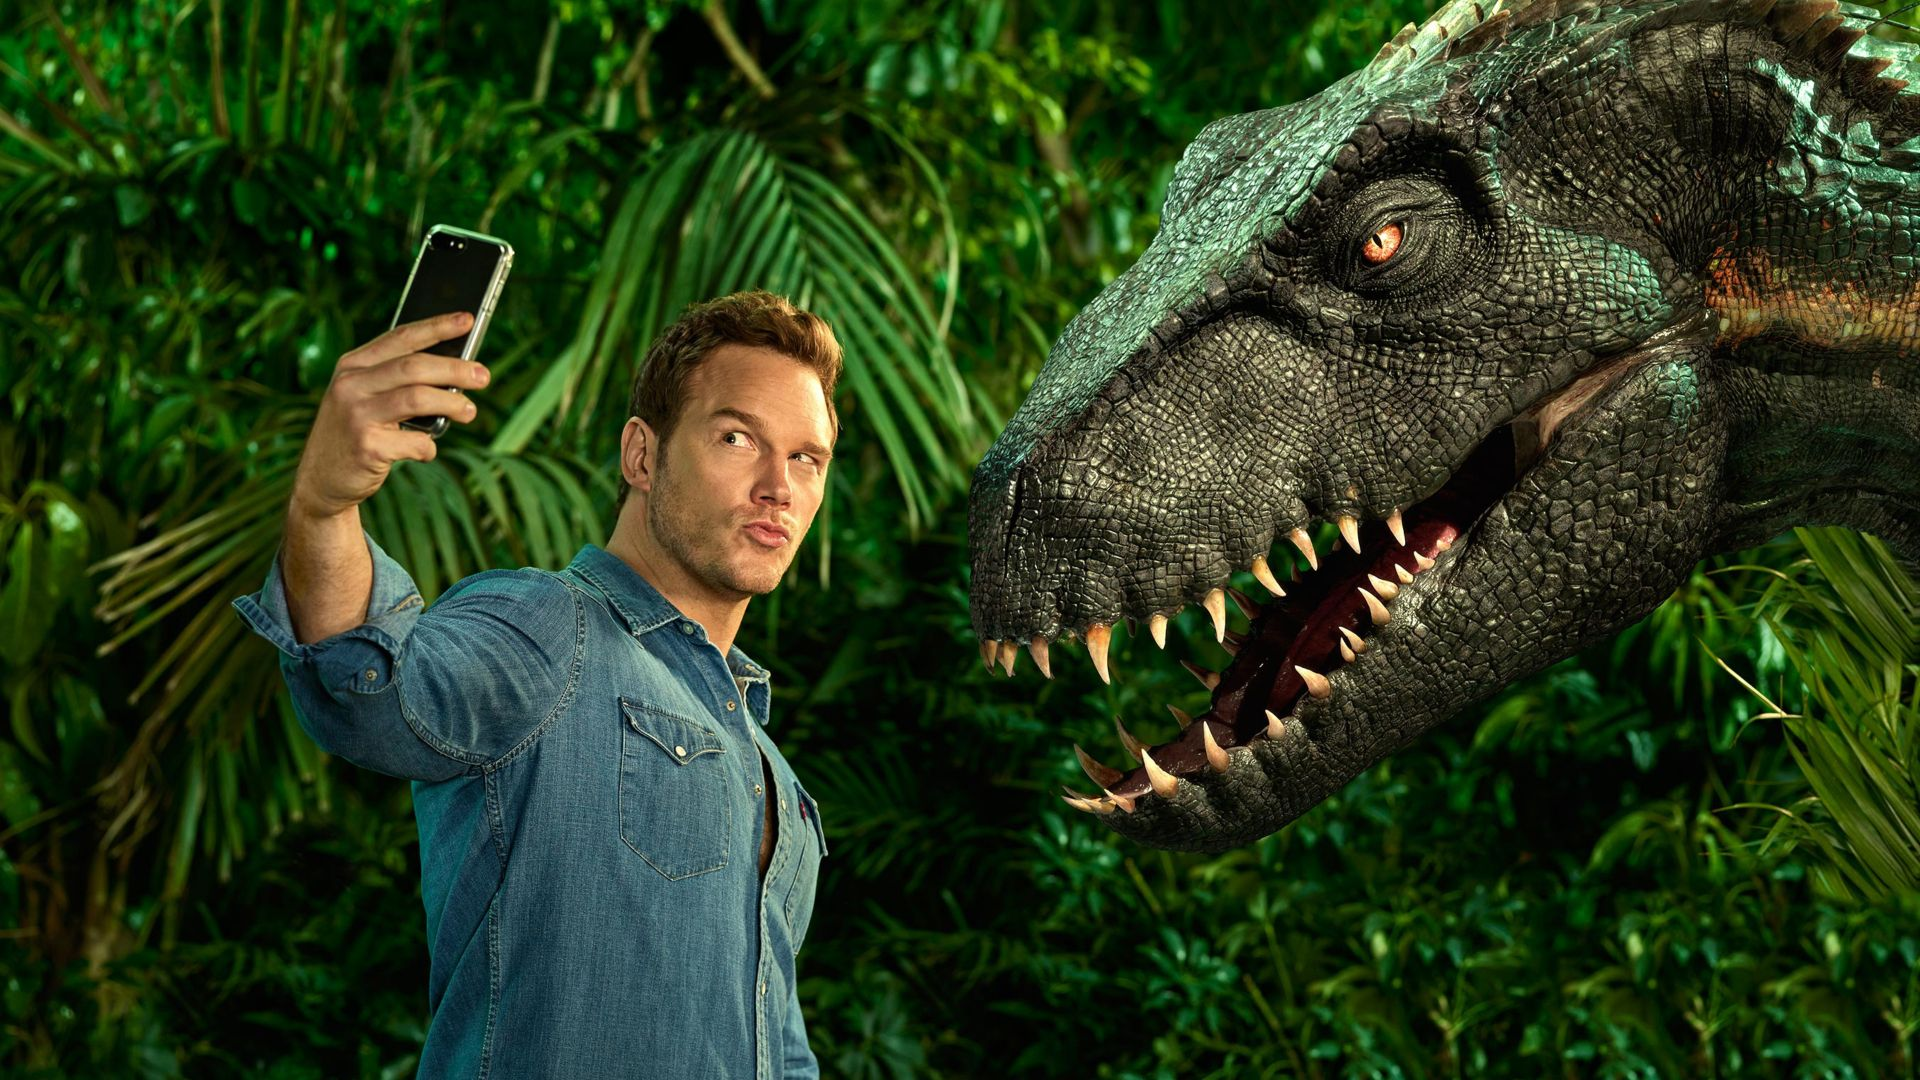 Jurassic World: Fallen Kingdom, Chris Pratt, dinosaur, 4k (horizontal)